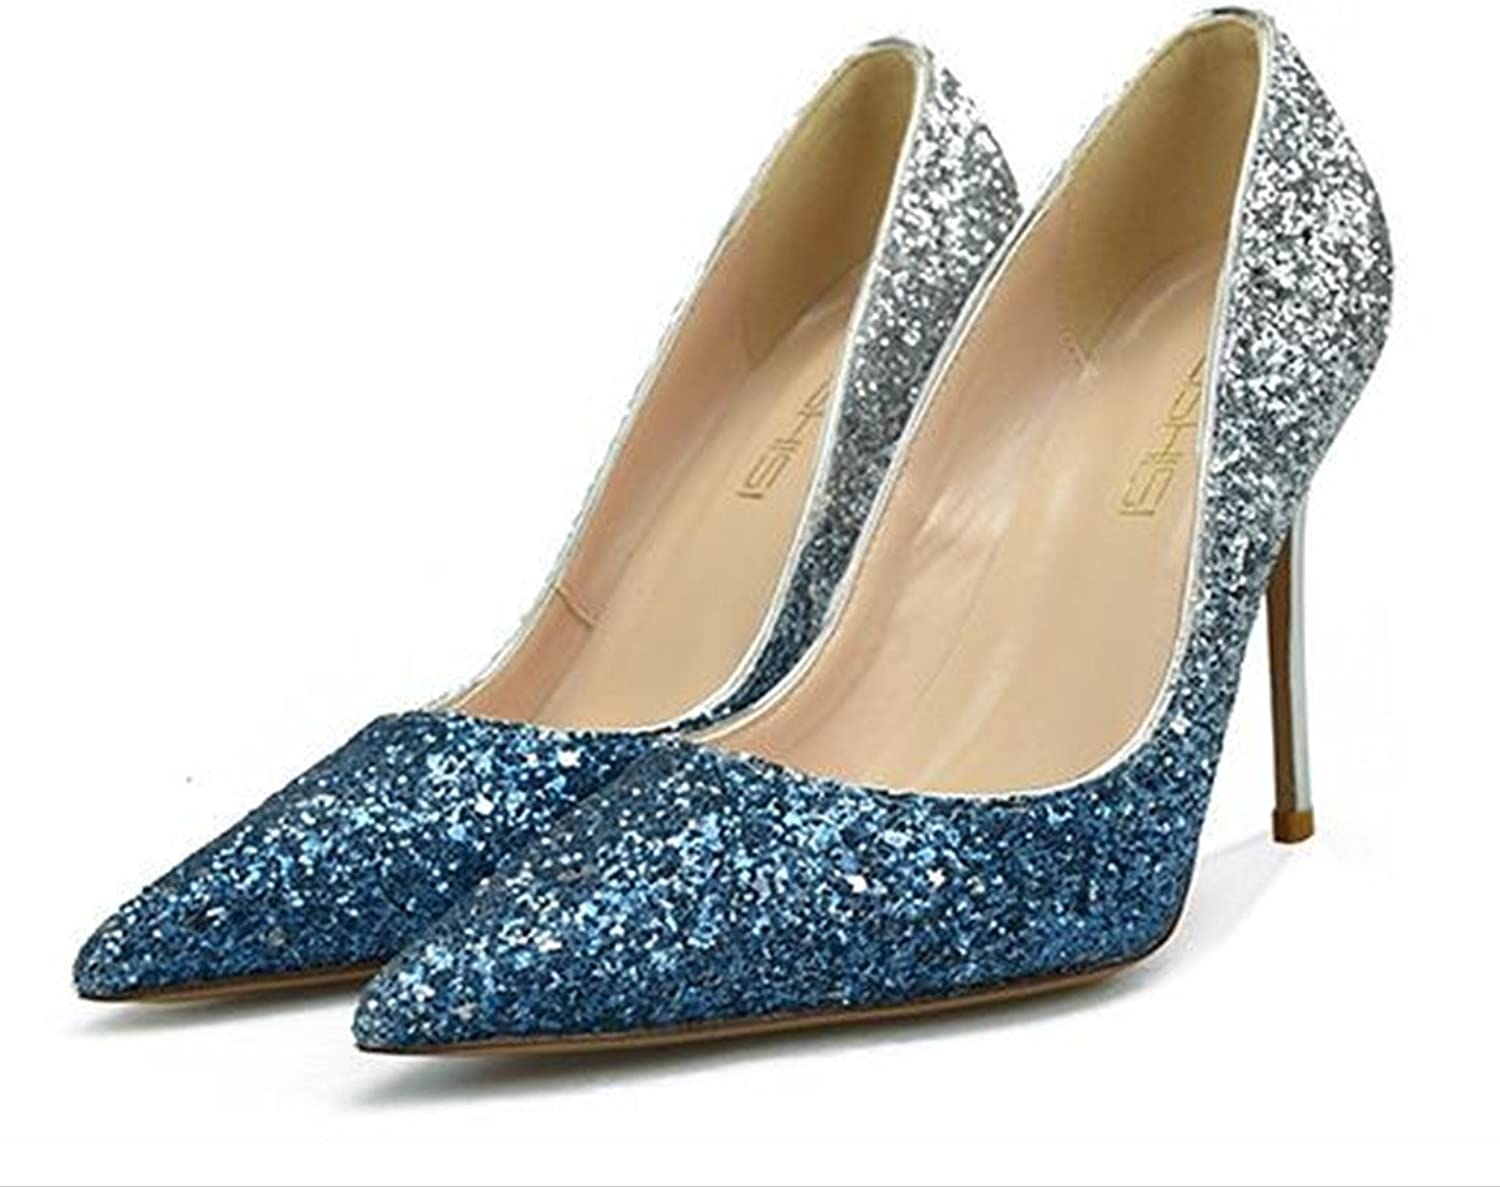 XIUWU Women's Glitering Evening Party Pumps High Heels